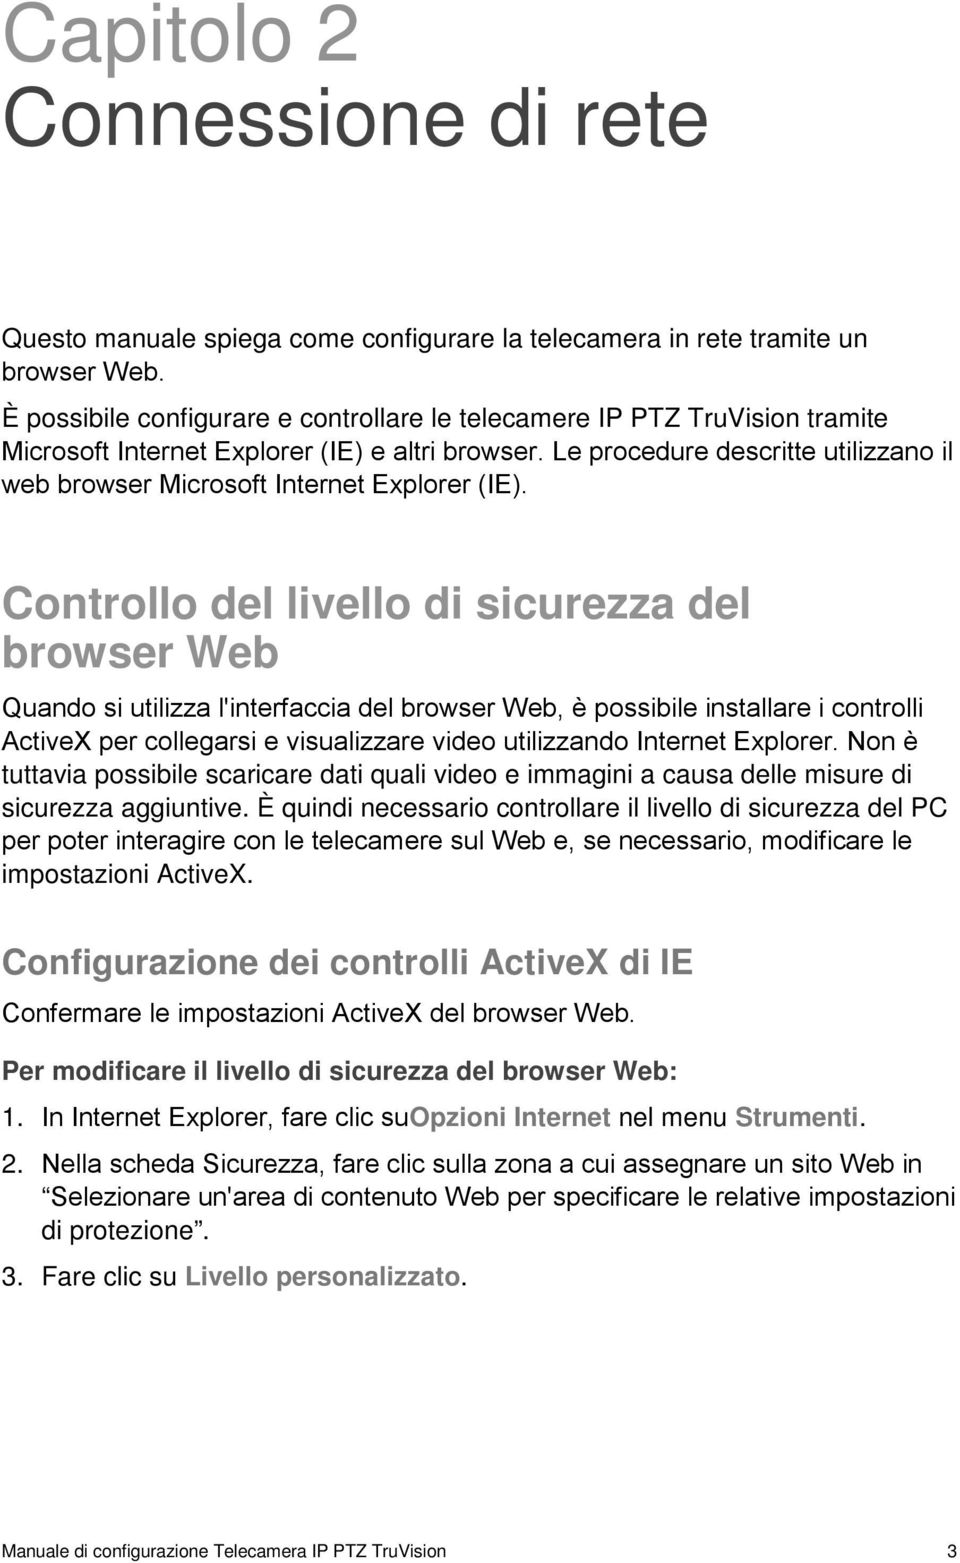 Le procedure descritte utilizzano il web browser Microsoft Internet Explorer (IE).